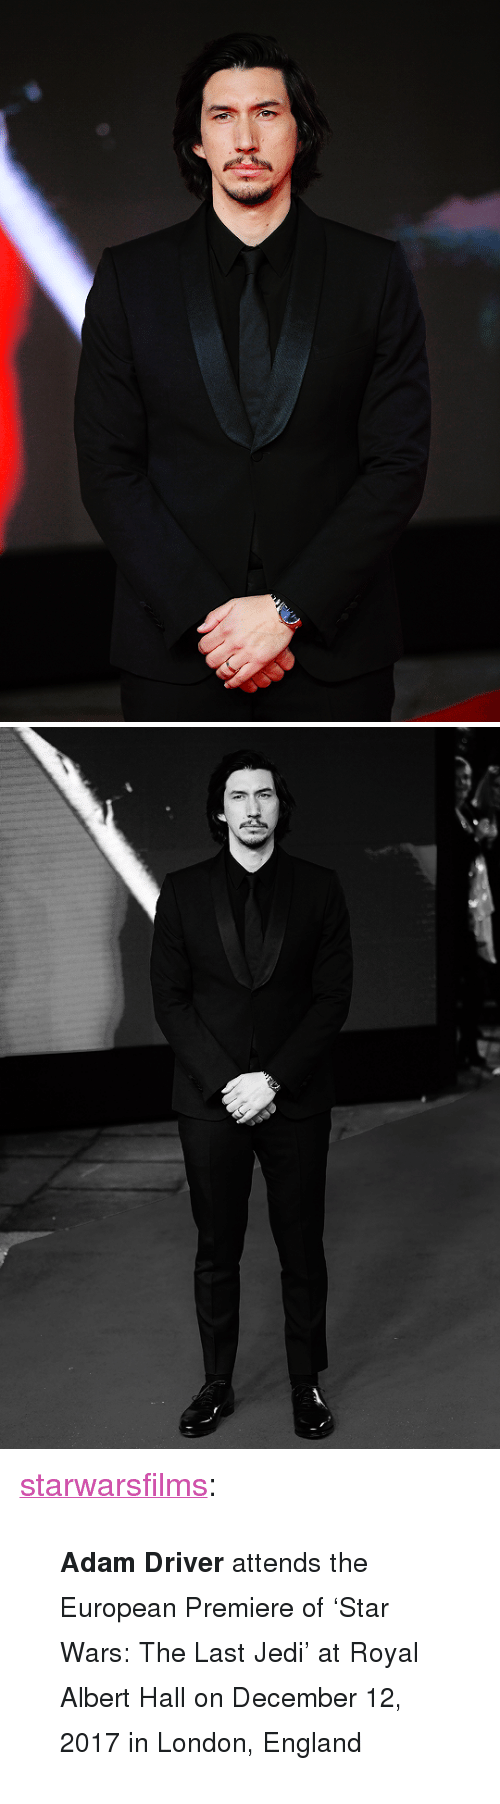 """Adam Driver, England, and Jedi: <p><a href=""""https://starwarsfilms.tumblr.com/post/168472101125/adam-driver-attends-the-european-premiere-of-star"""" class=""""tumblr_blog"""">starwarsfilms</a>:</p>  <blockquote><p><small><b>Adam Driver</b> attends the European Premiere of 'Star Wars: The Last Jedi' at Royal Albert Hall on December 12, 2017 in London, England</small></p></blockquote>"""